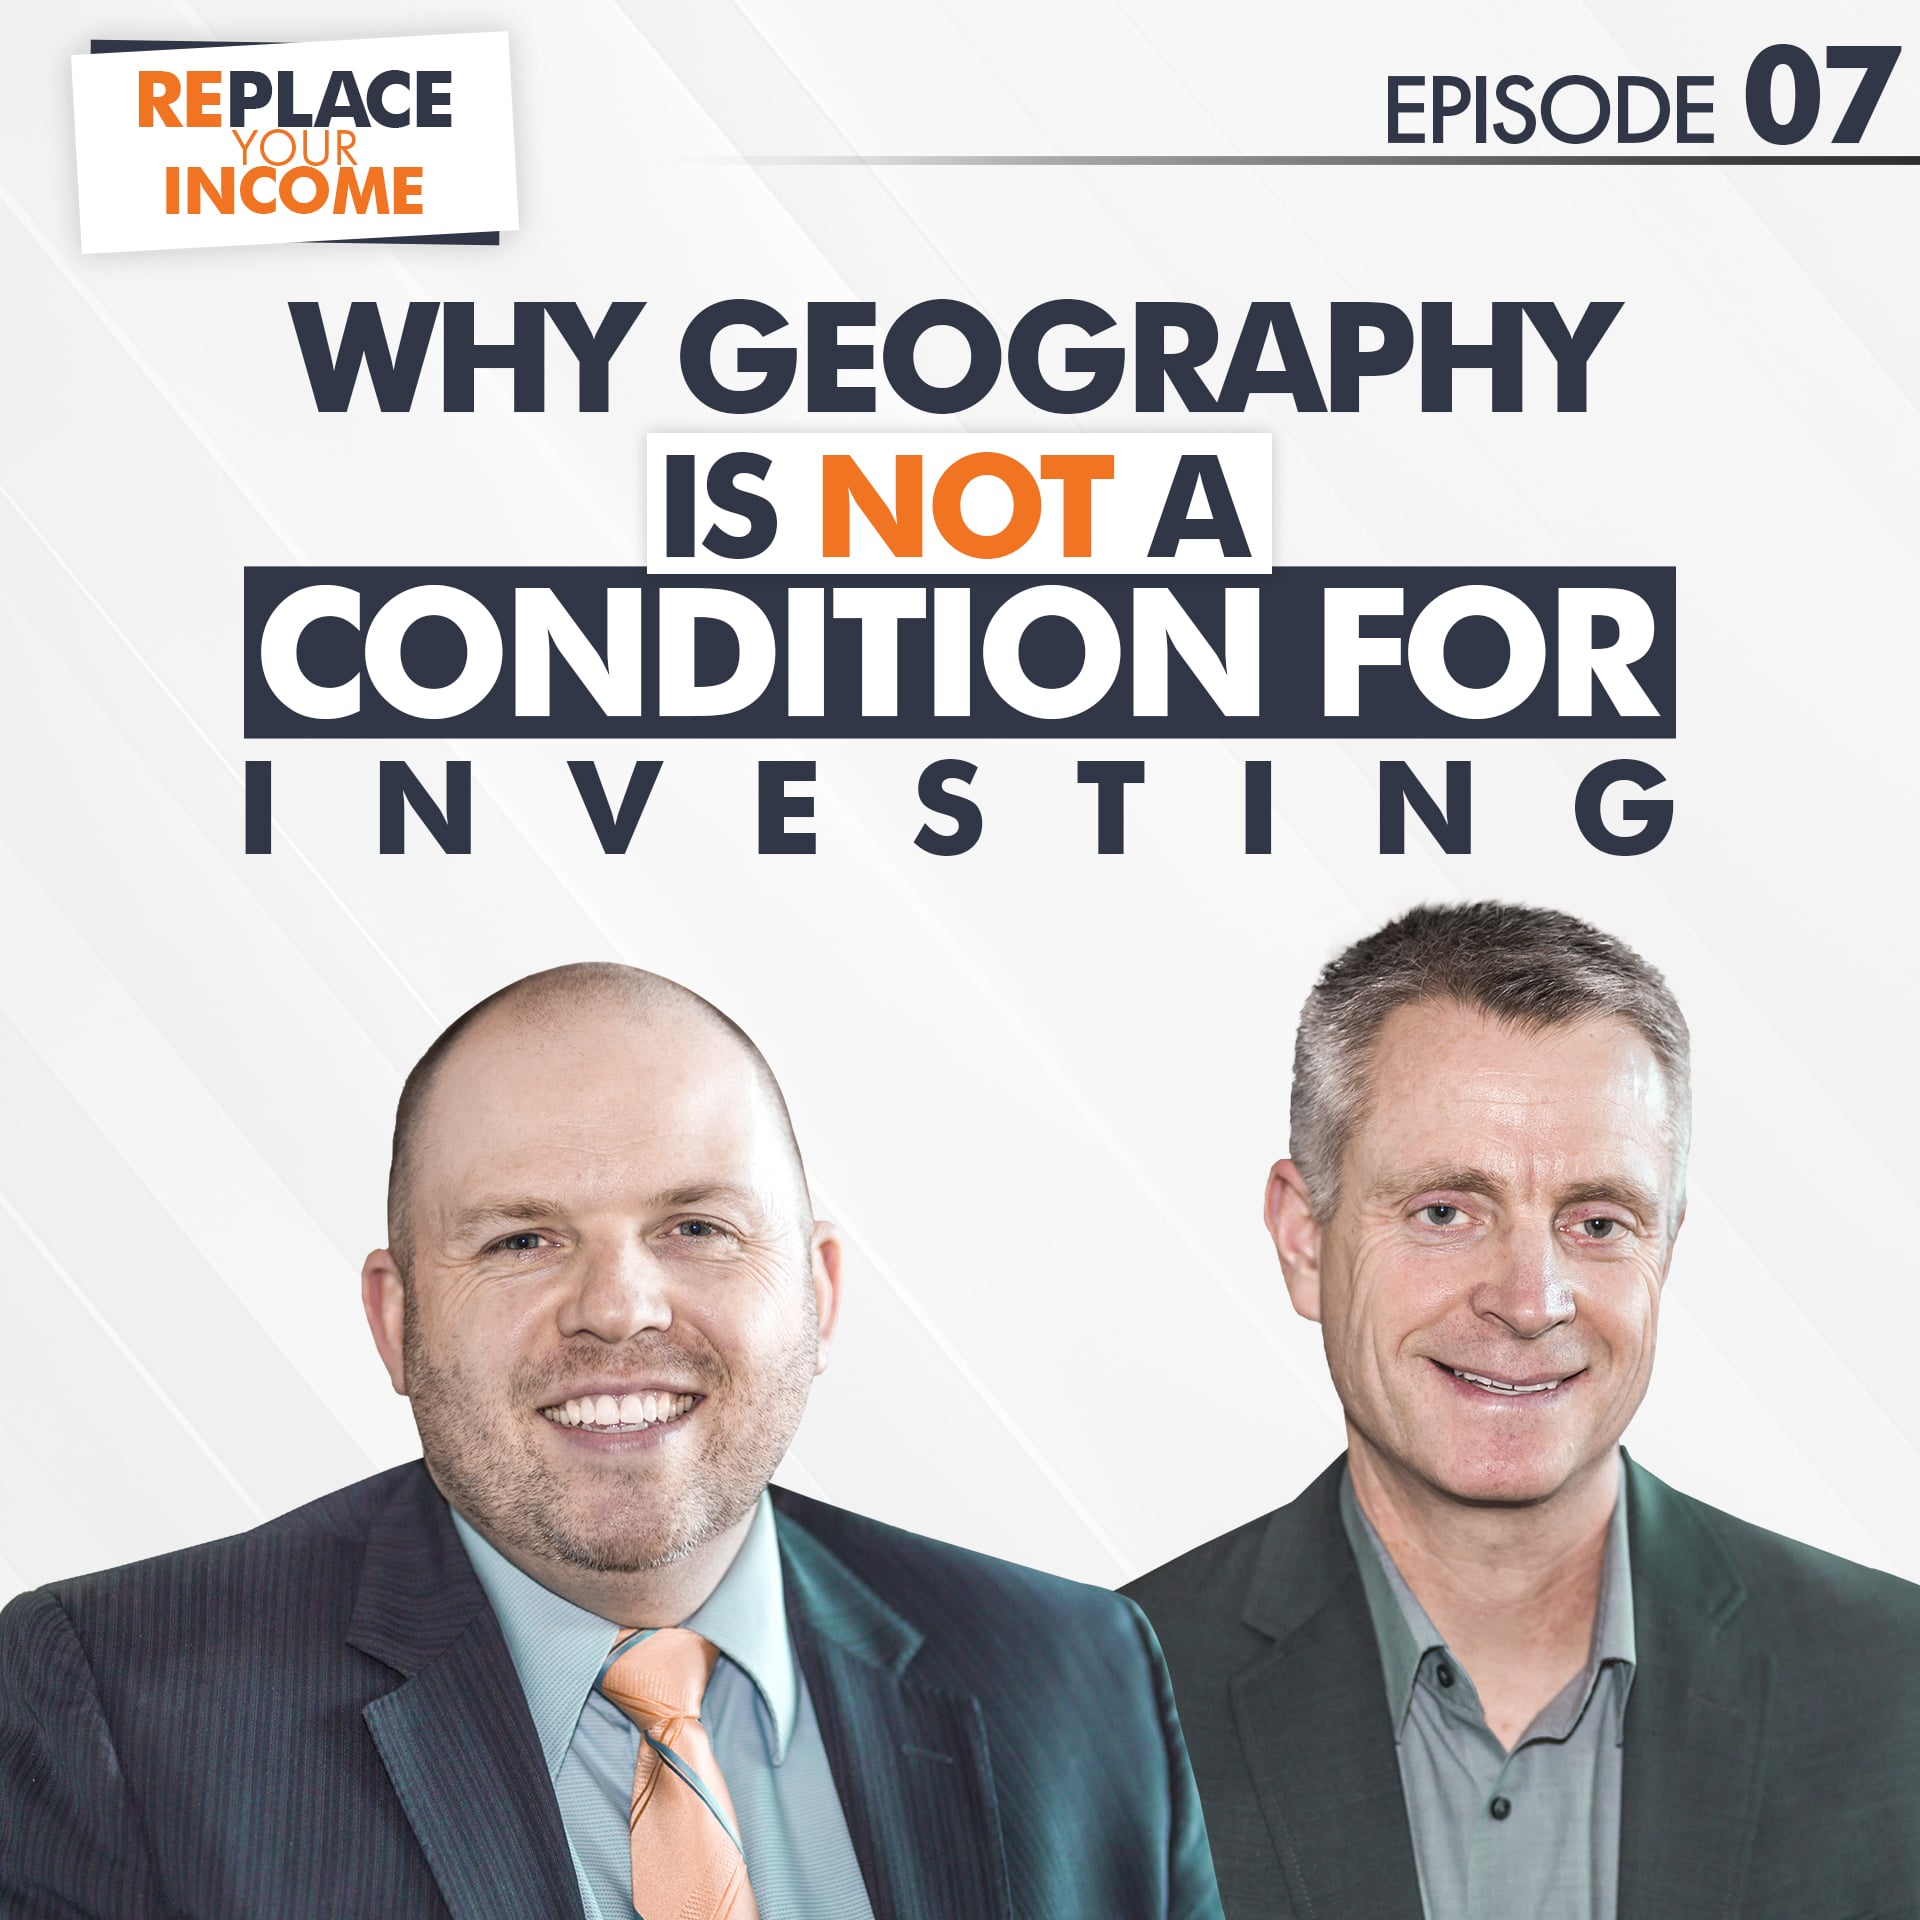 Why geography is NOT a condition for investing - Episode 7 of Replace Your Income